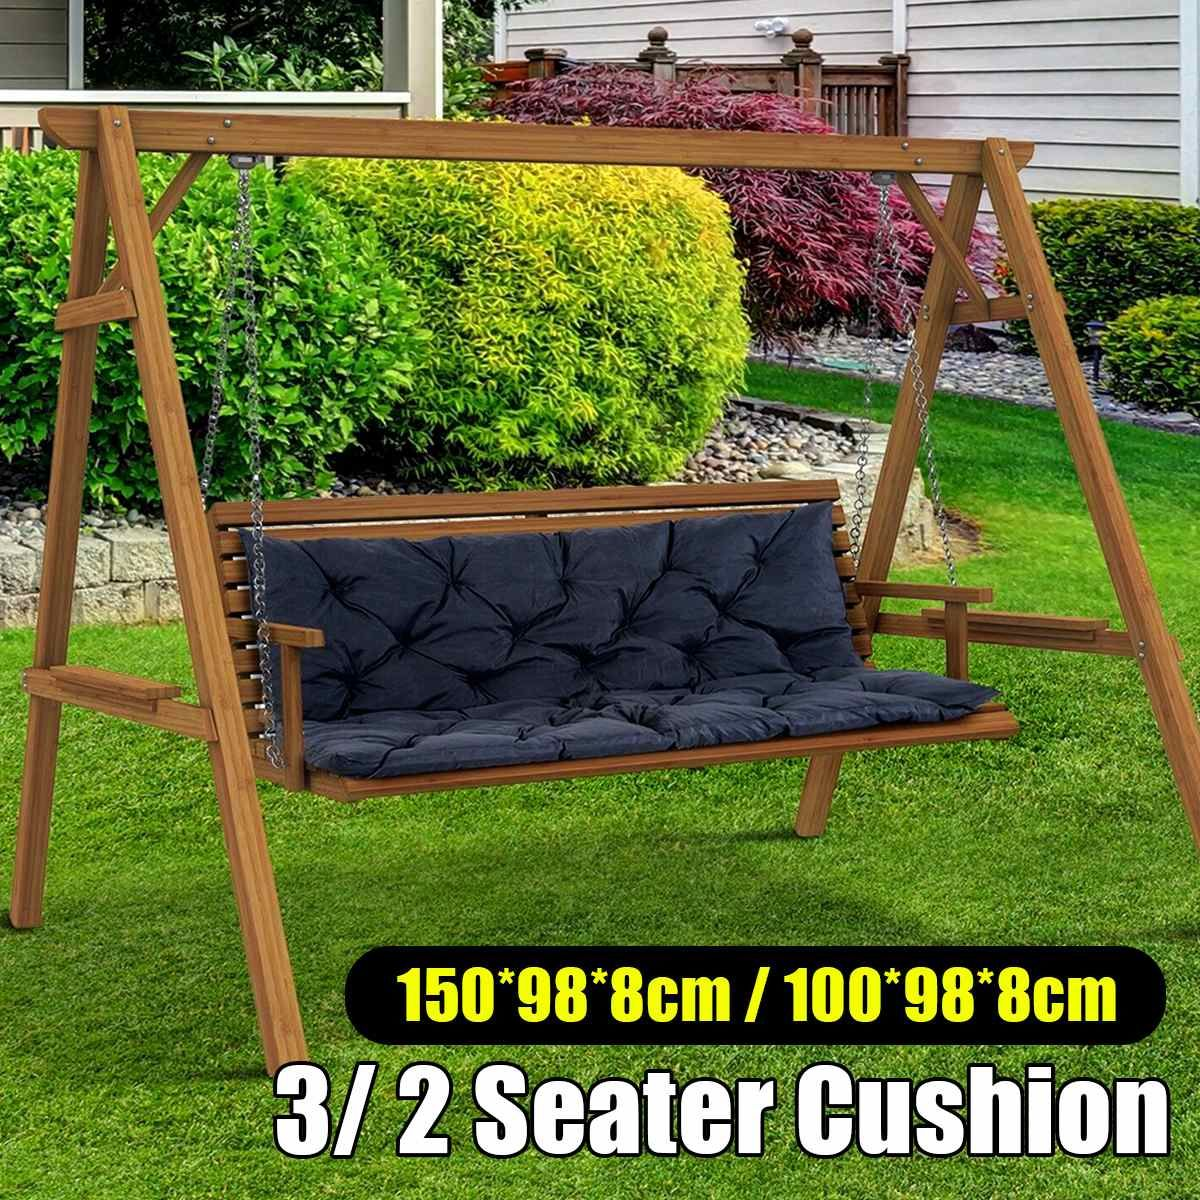 Waterproof Dustproof Chair Replacement Canopy 150cm 3 Seater Garden Swing Cushion Fabric Cover Dust Covers Spo In 2020 3 Seater Garden Swing Cushion Fabric Chair Cover